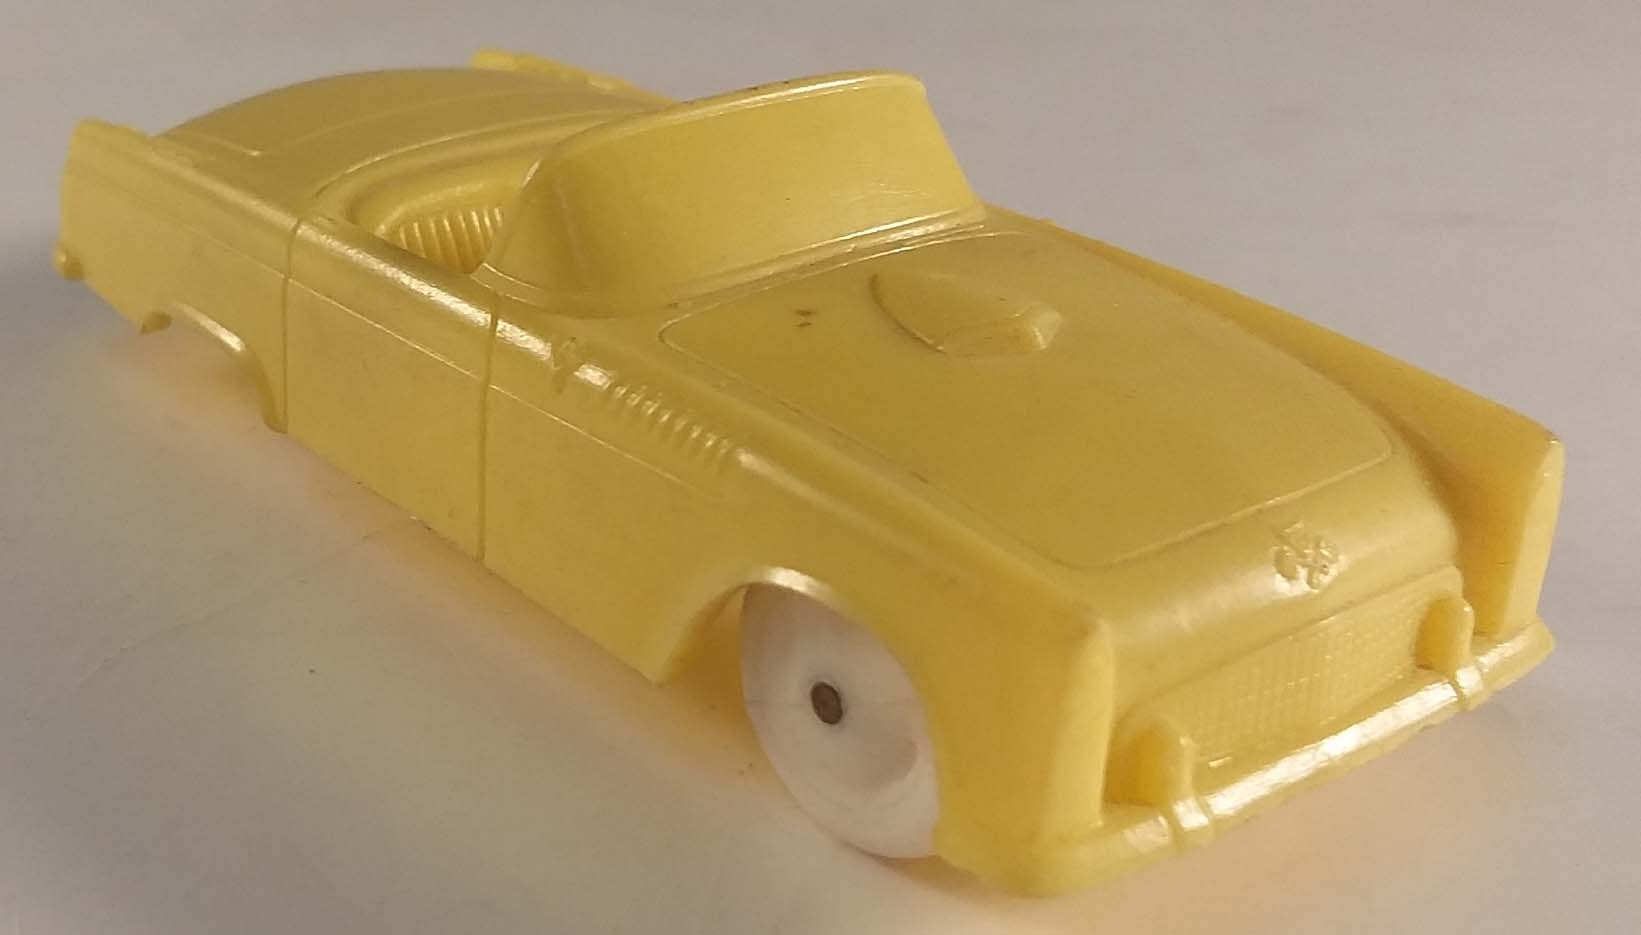 1955 Ford Thunderbird in yellow Wheaties cereal giveaway